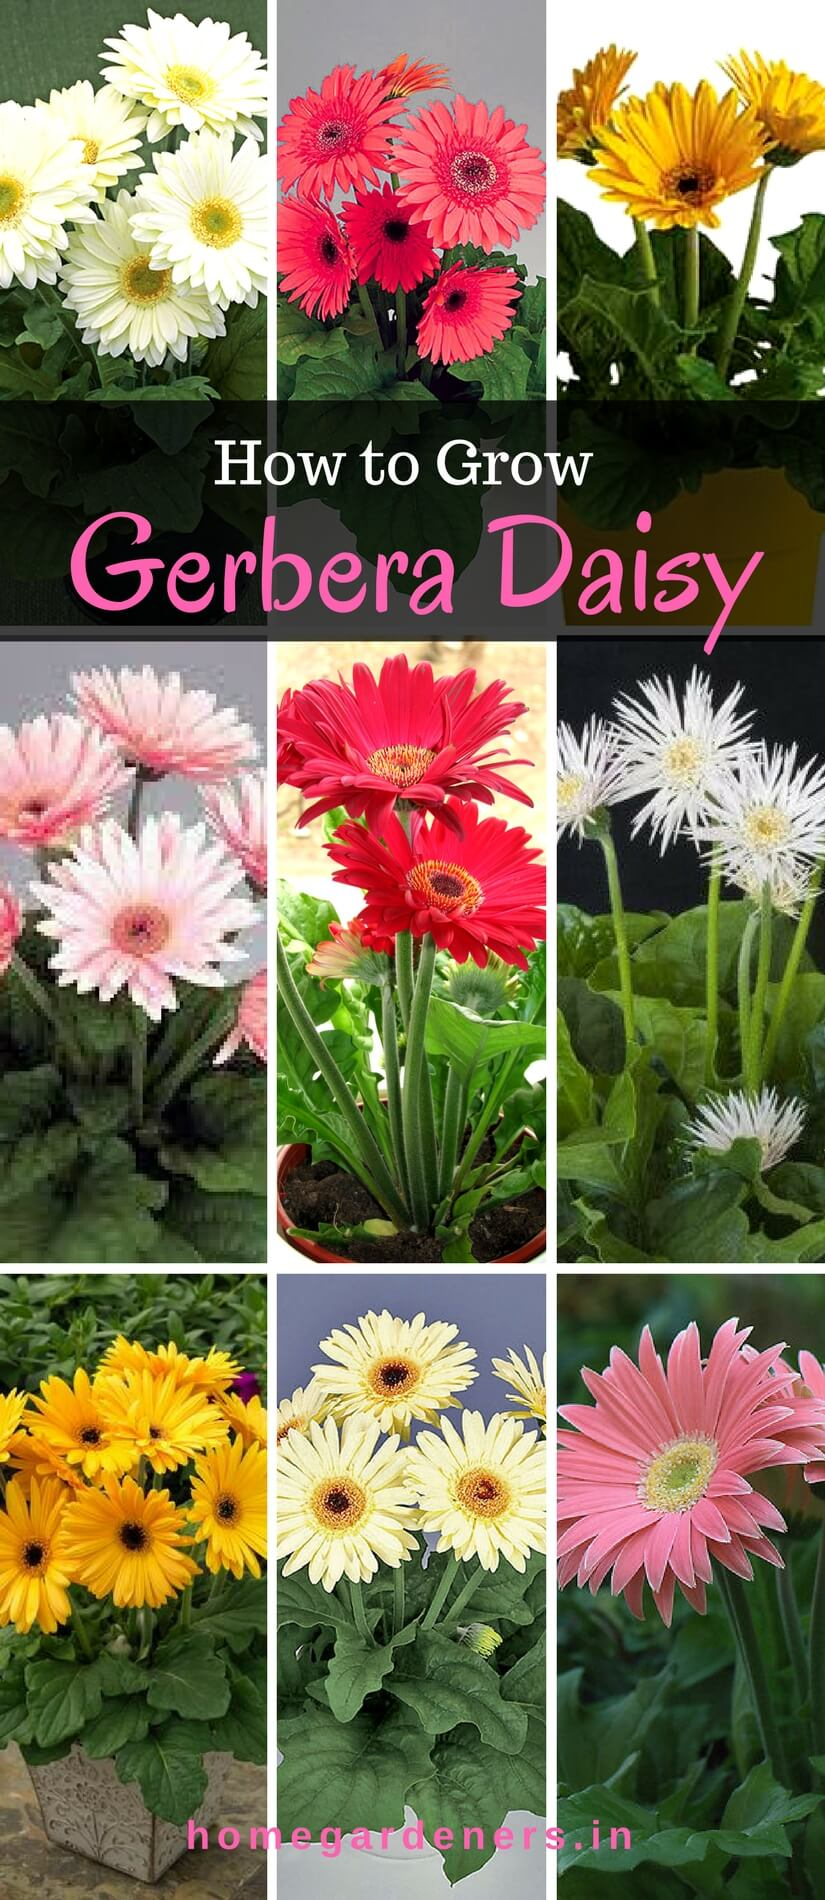 Gerbera daisy guide the only gerbera daisy resources you will ever gerbera daisy guide the only gerbera daisy resources you will ever need izmirmasajfo